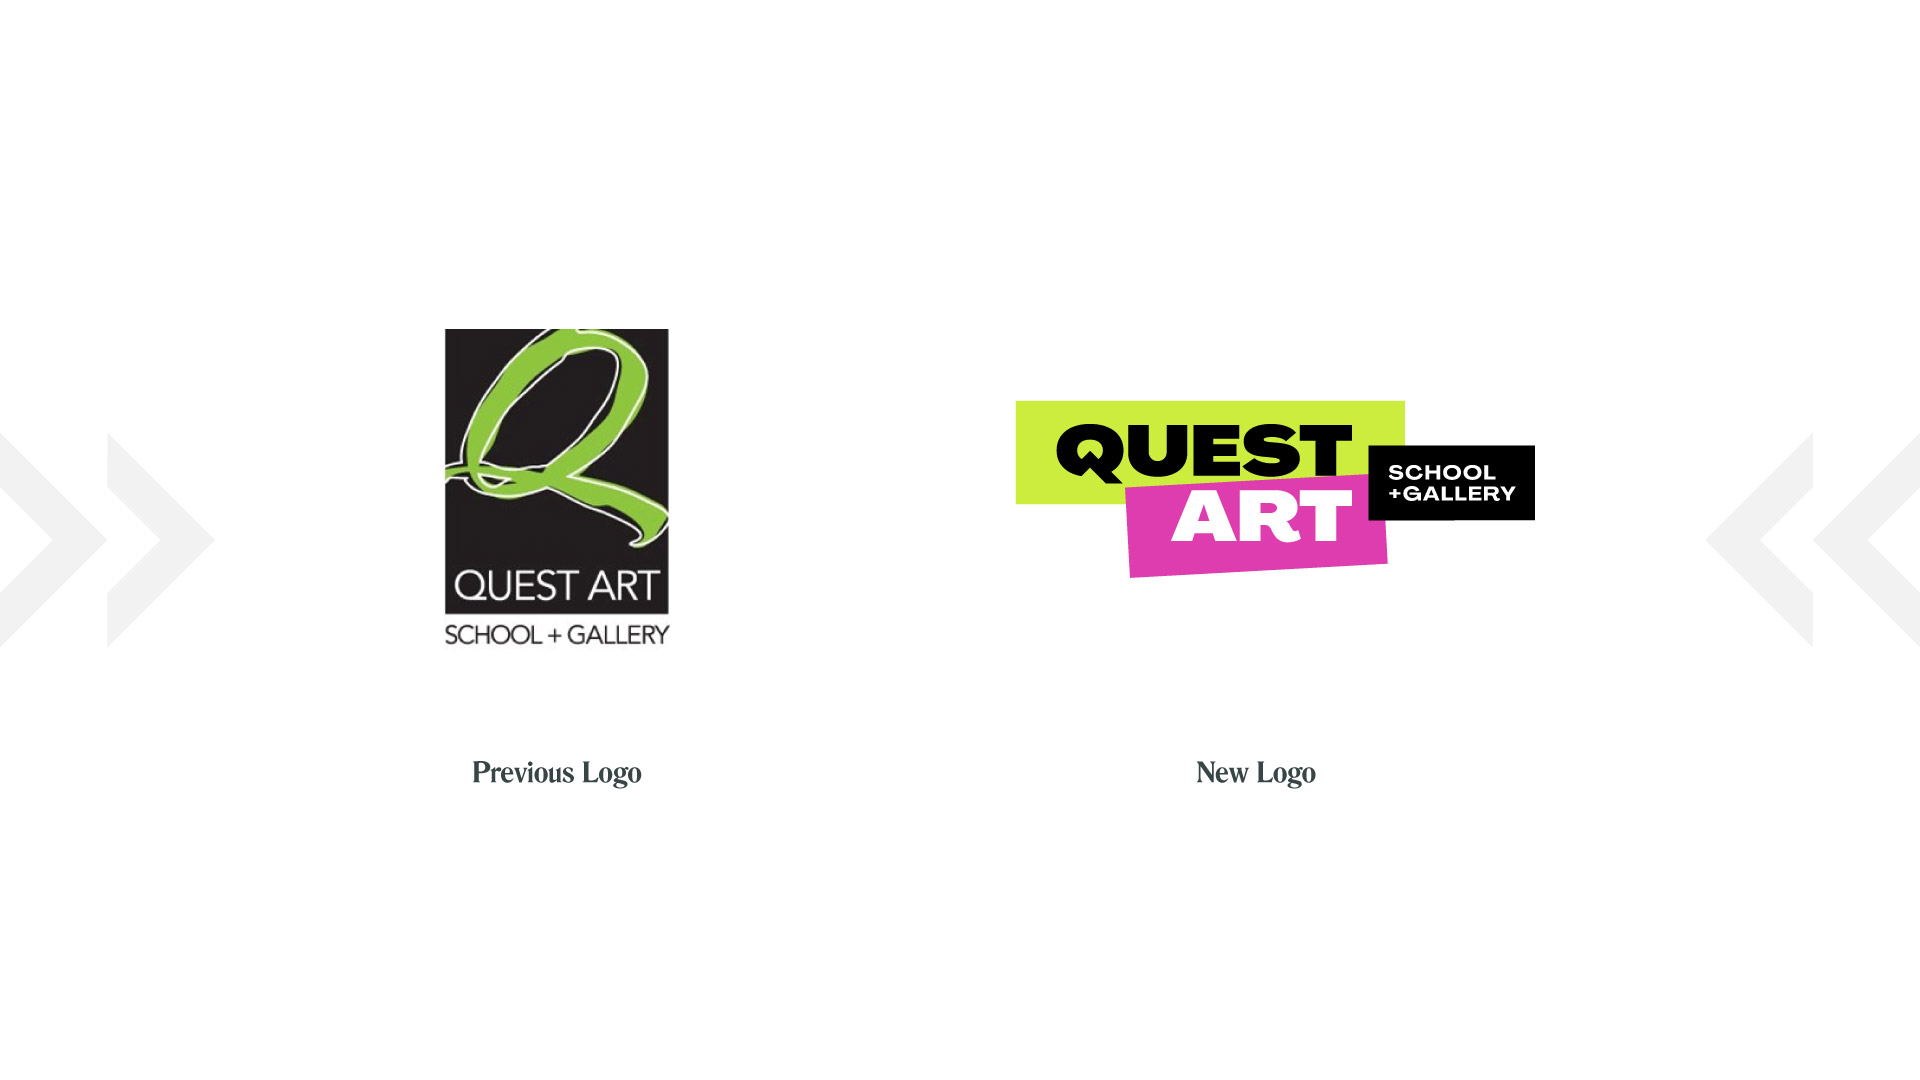 quest art school and gallery previous and new logo comparison